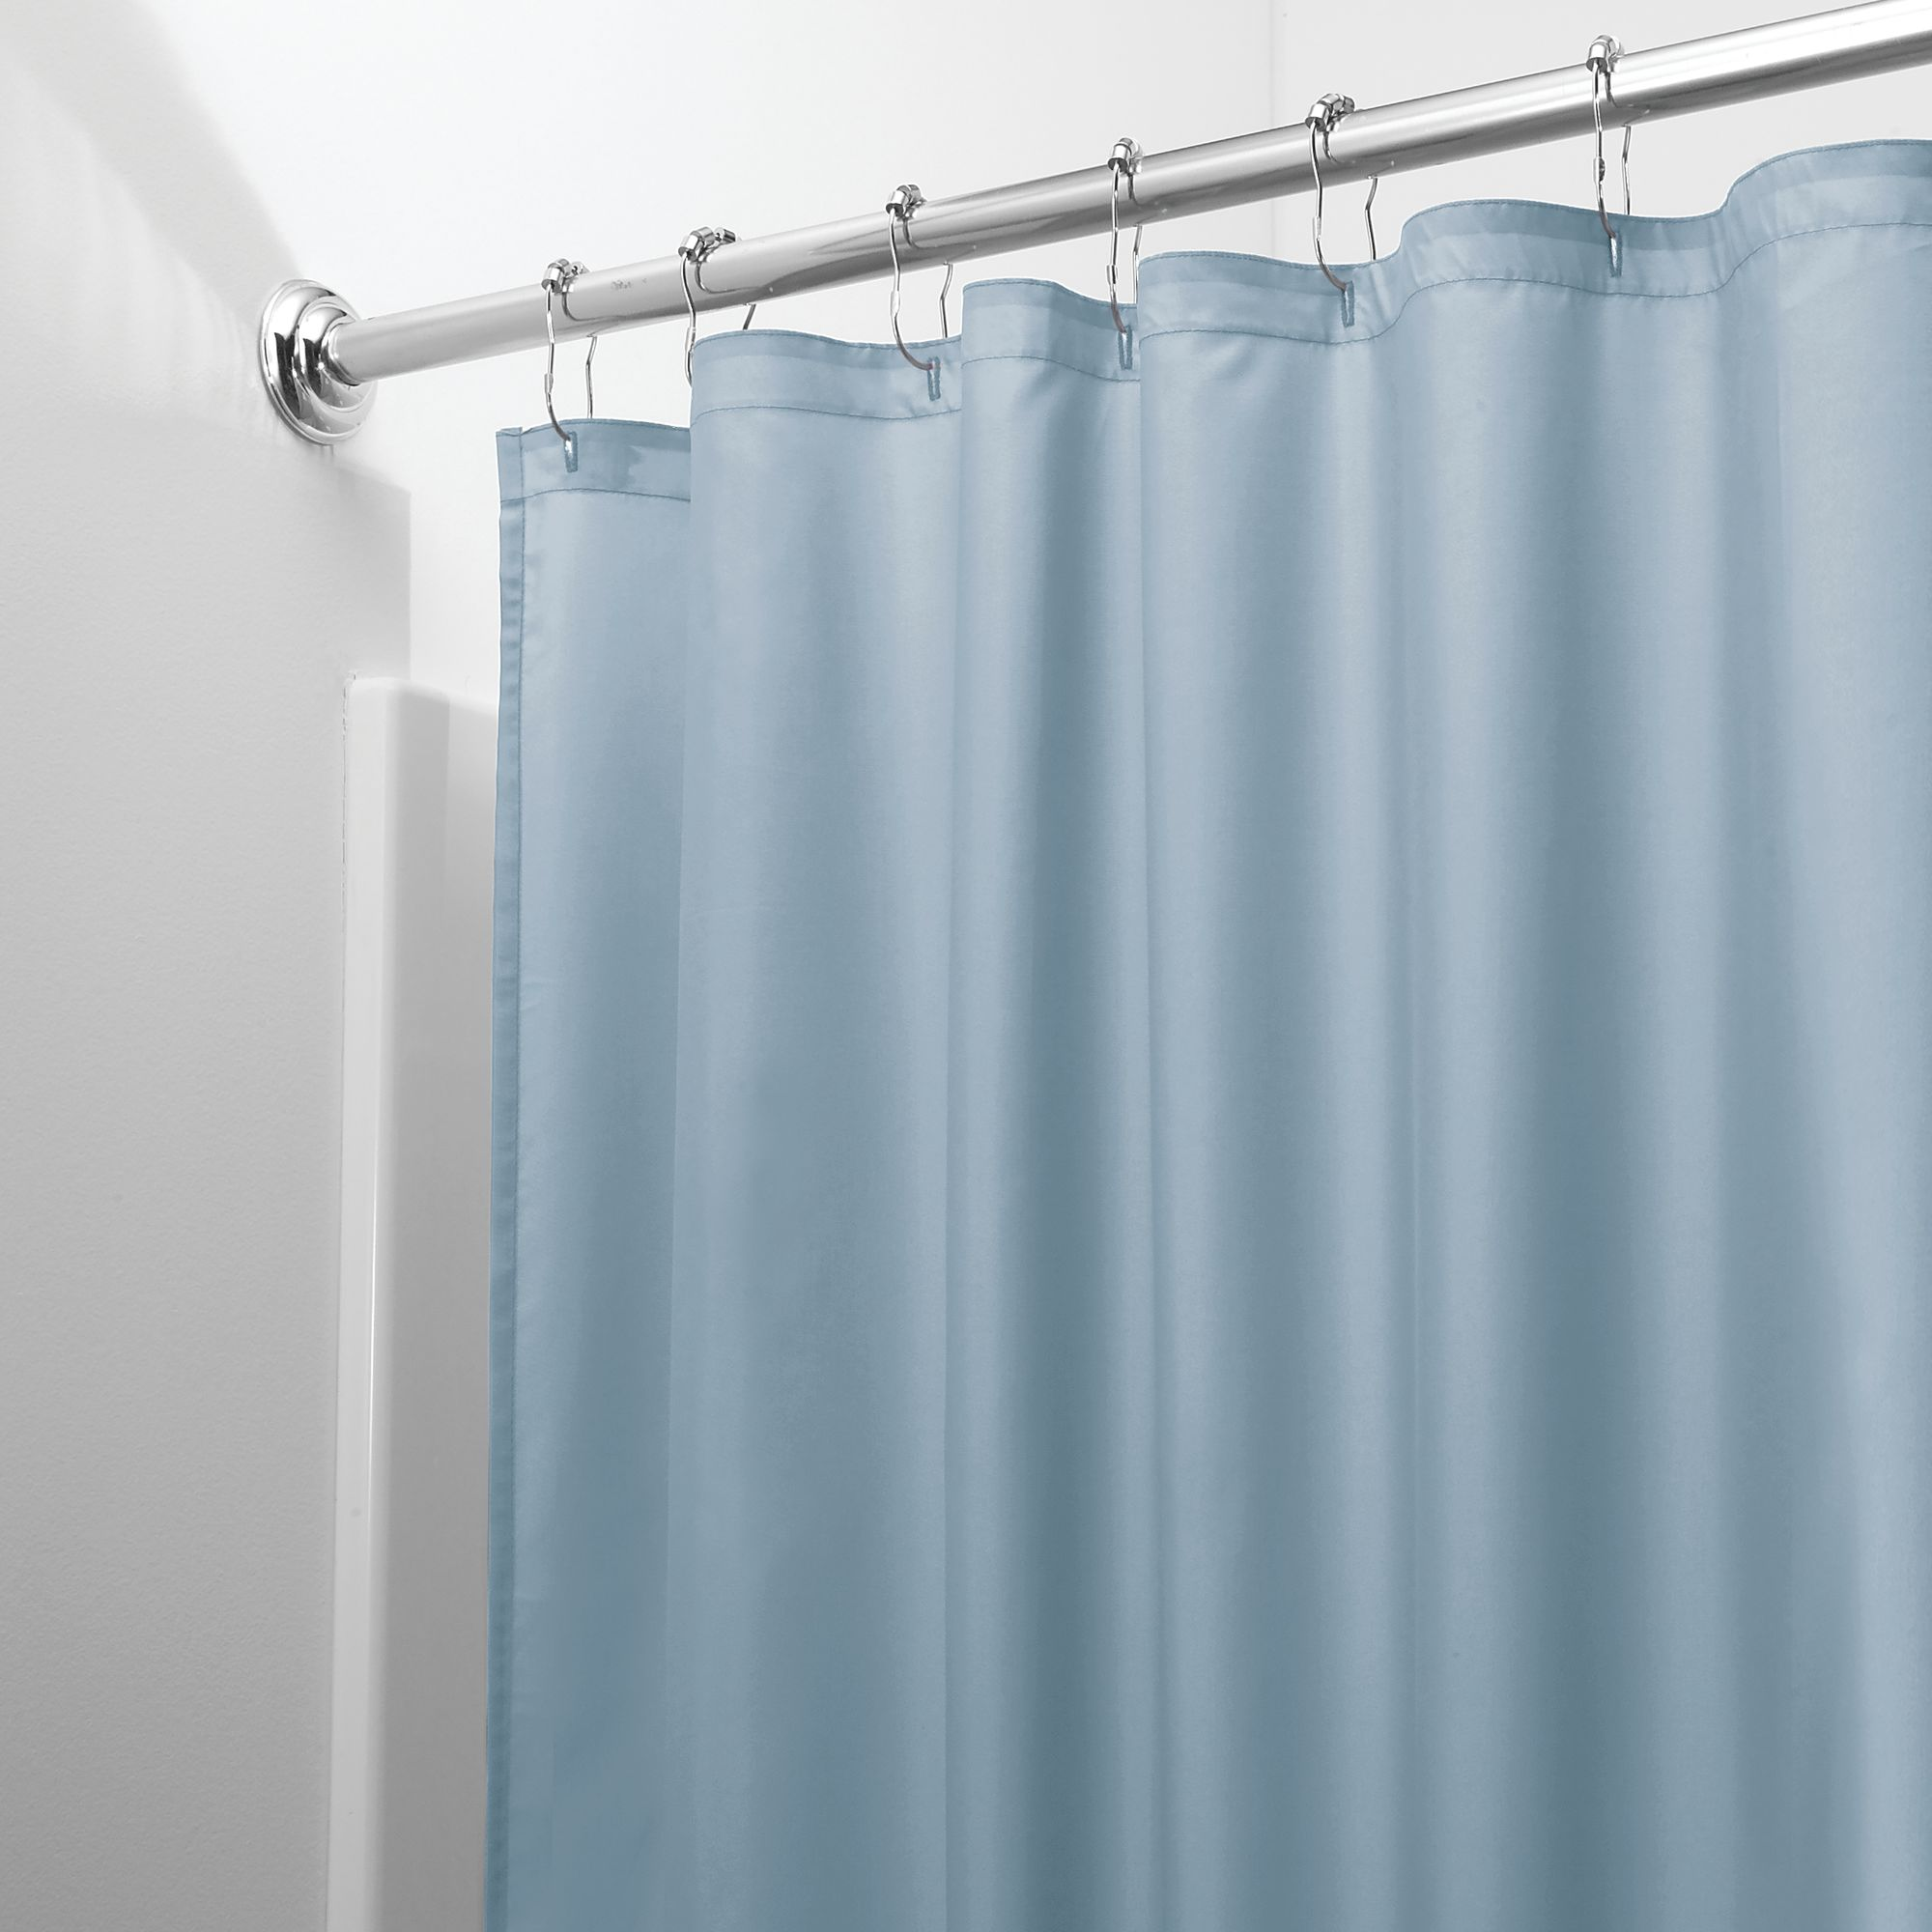 InterDesign Waterproof Fabric Shower Curtain Liner, Various Colors